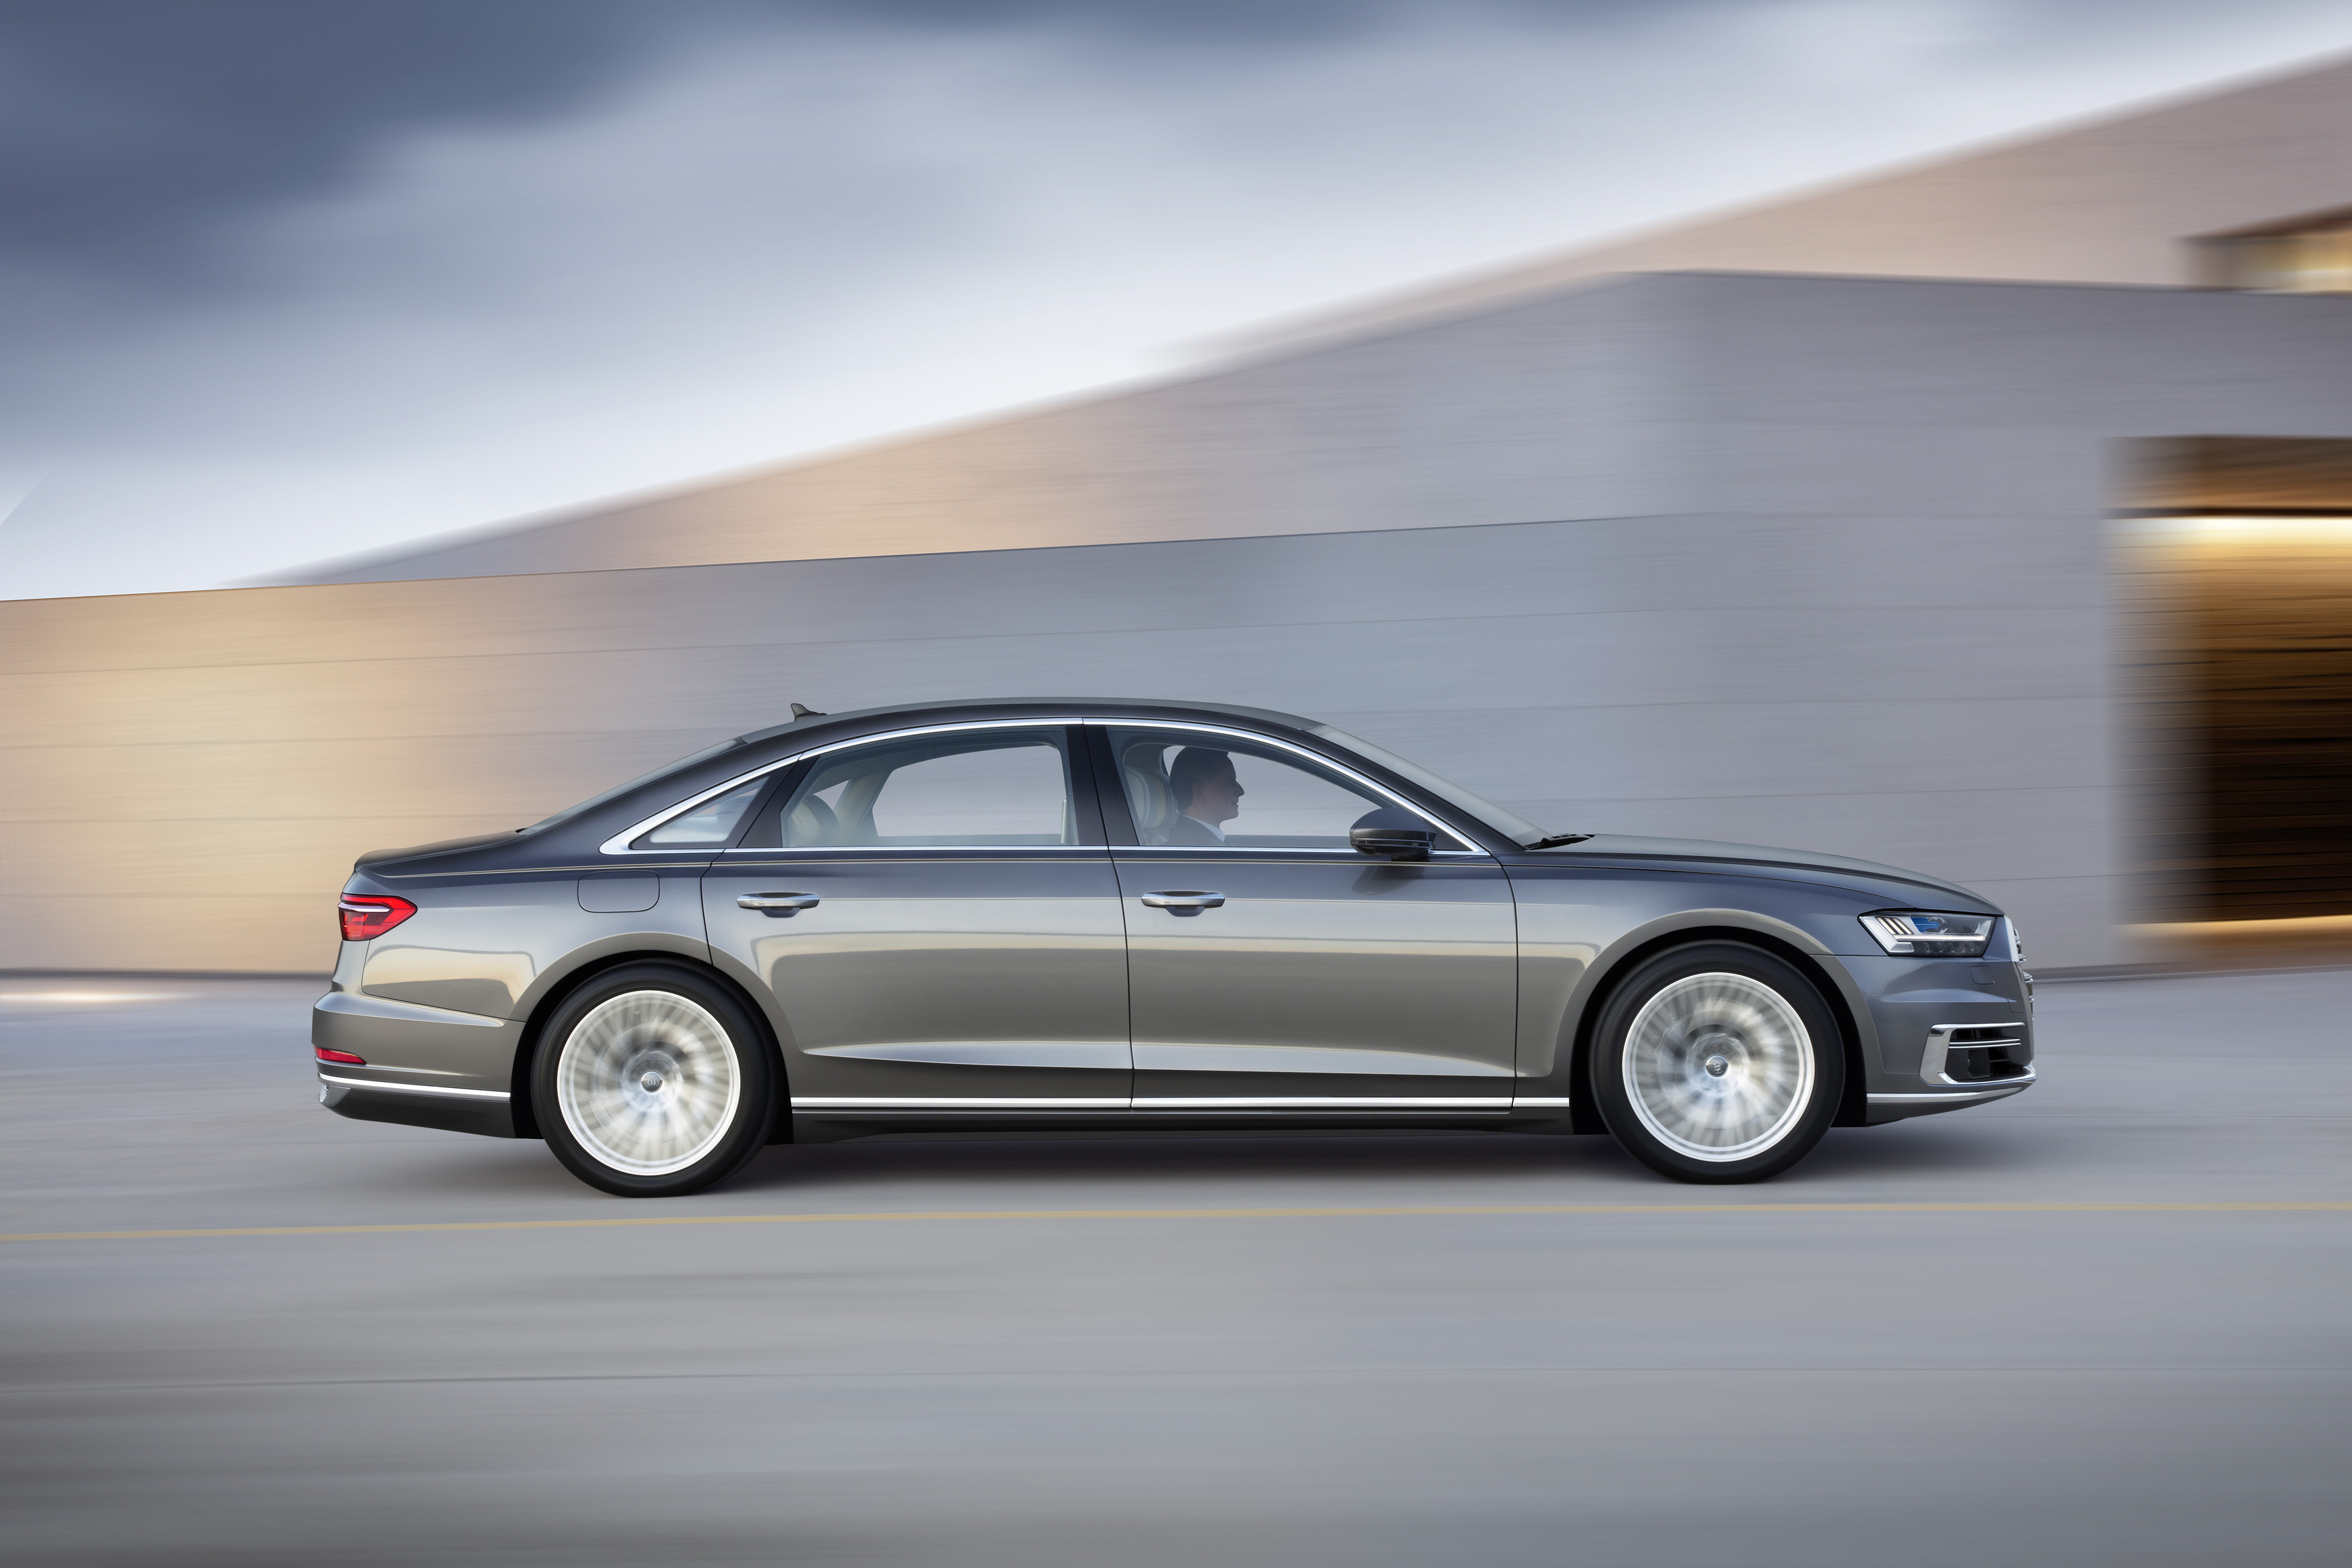 Audi A Debuts Packed With FutureFacing Tech The Drive - 2018 audi a8